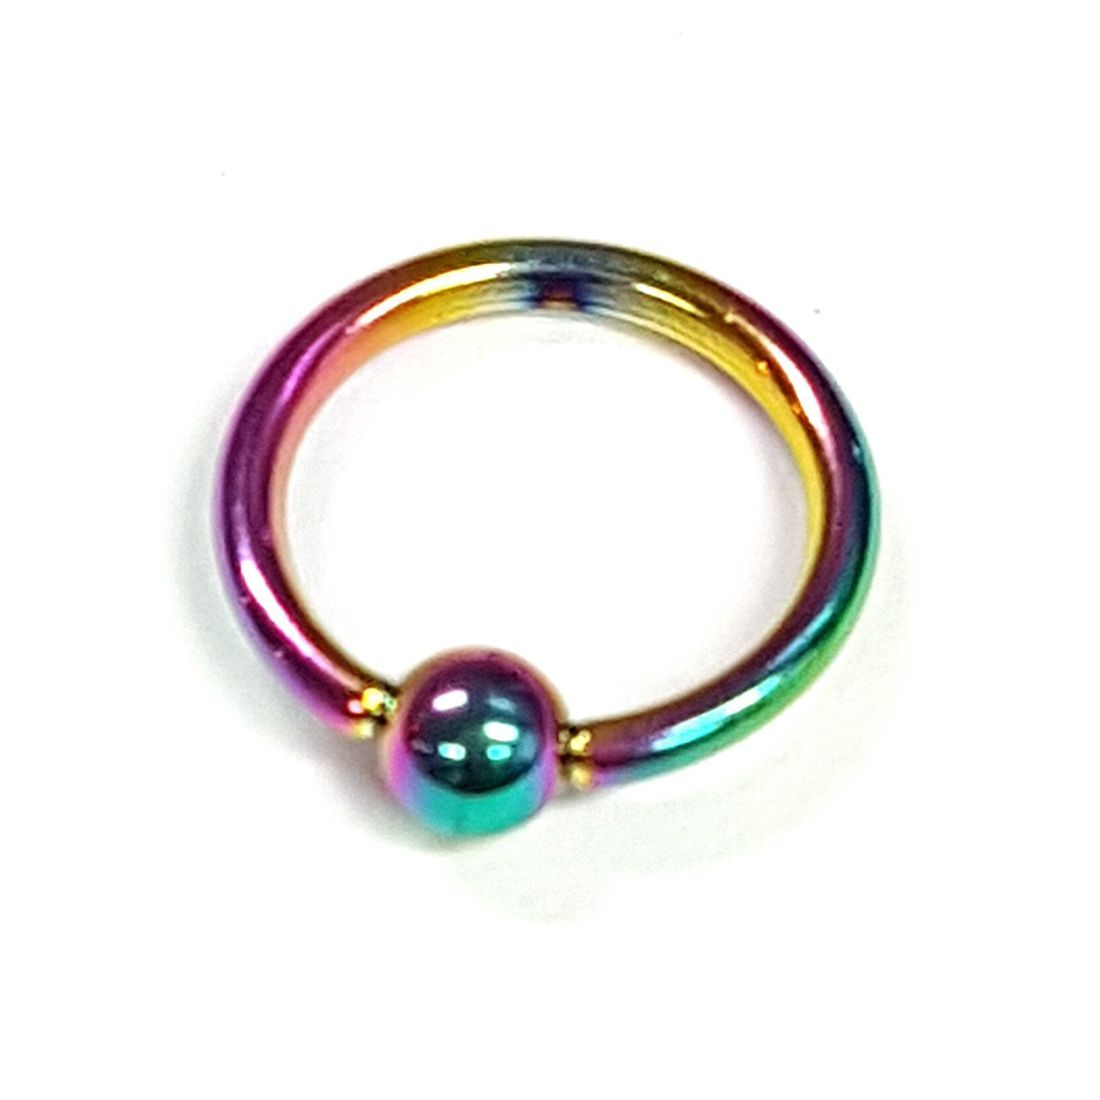 1.2mm x 10mm Rainbow Ball Closure Ringavailable at kazbah online or our Leicester City Centre Store